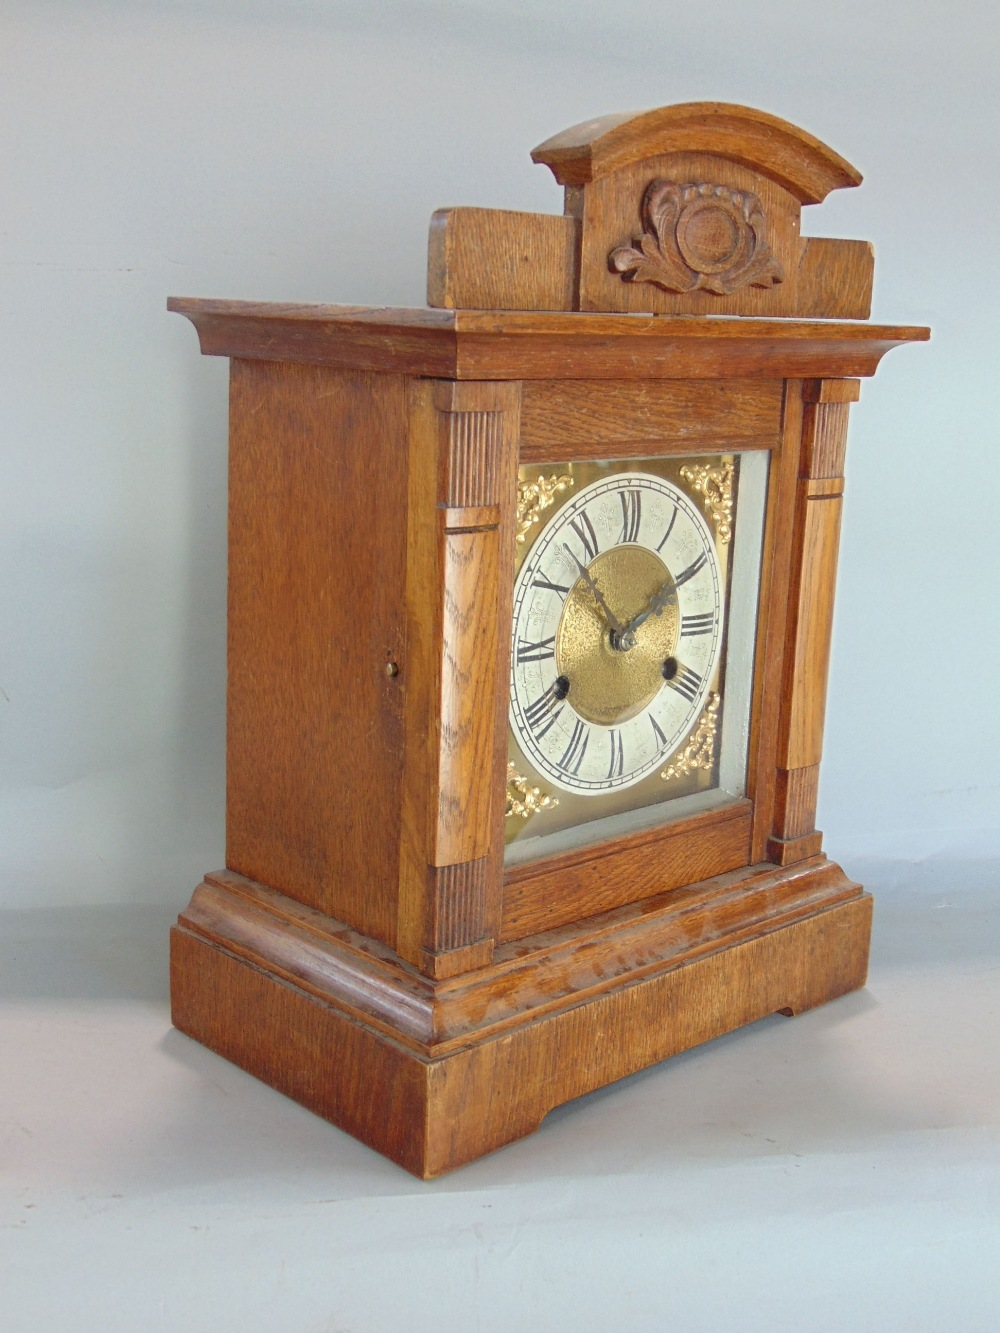 Lot 587 - Oak cased architectural two train mantel clock, the brass dial with silver chapter ring engraved